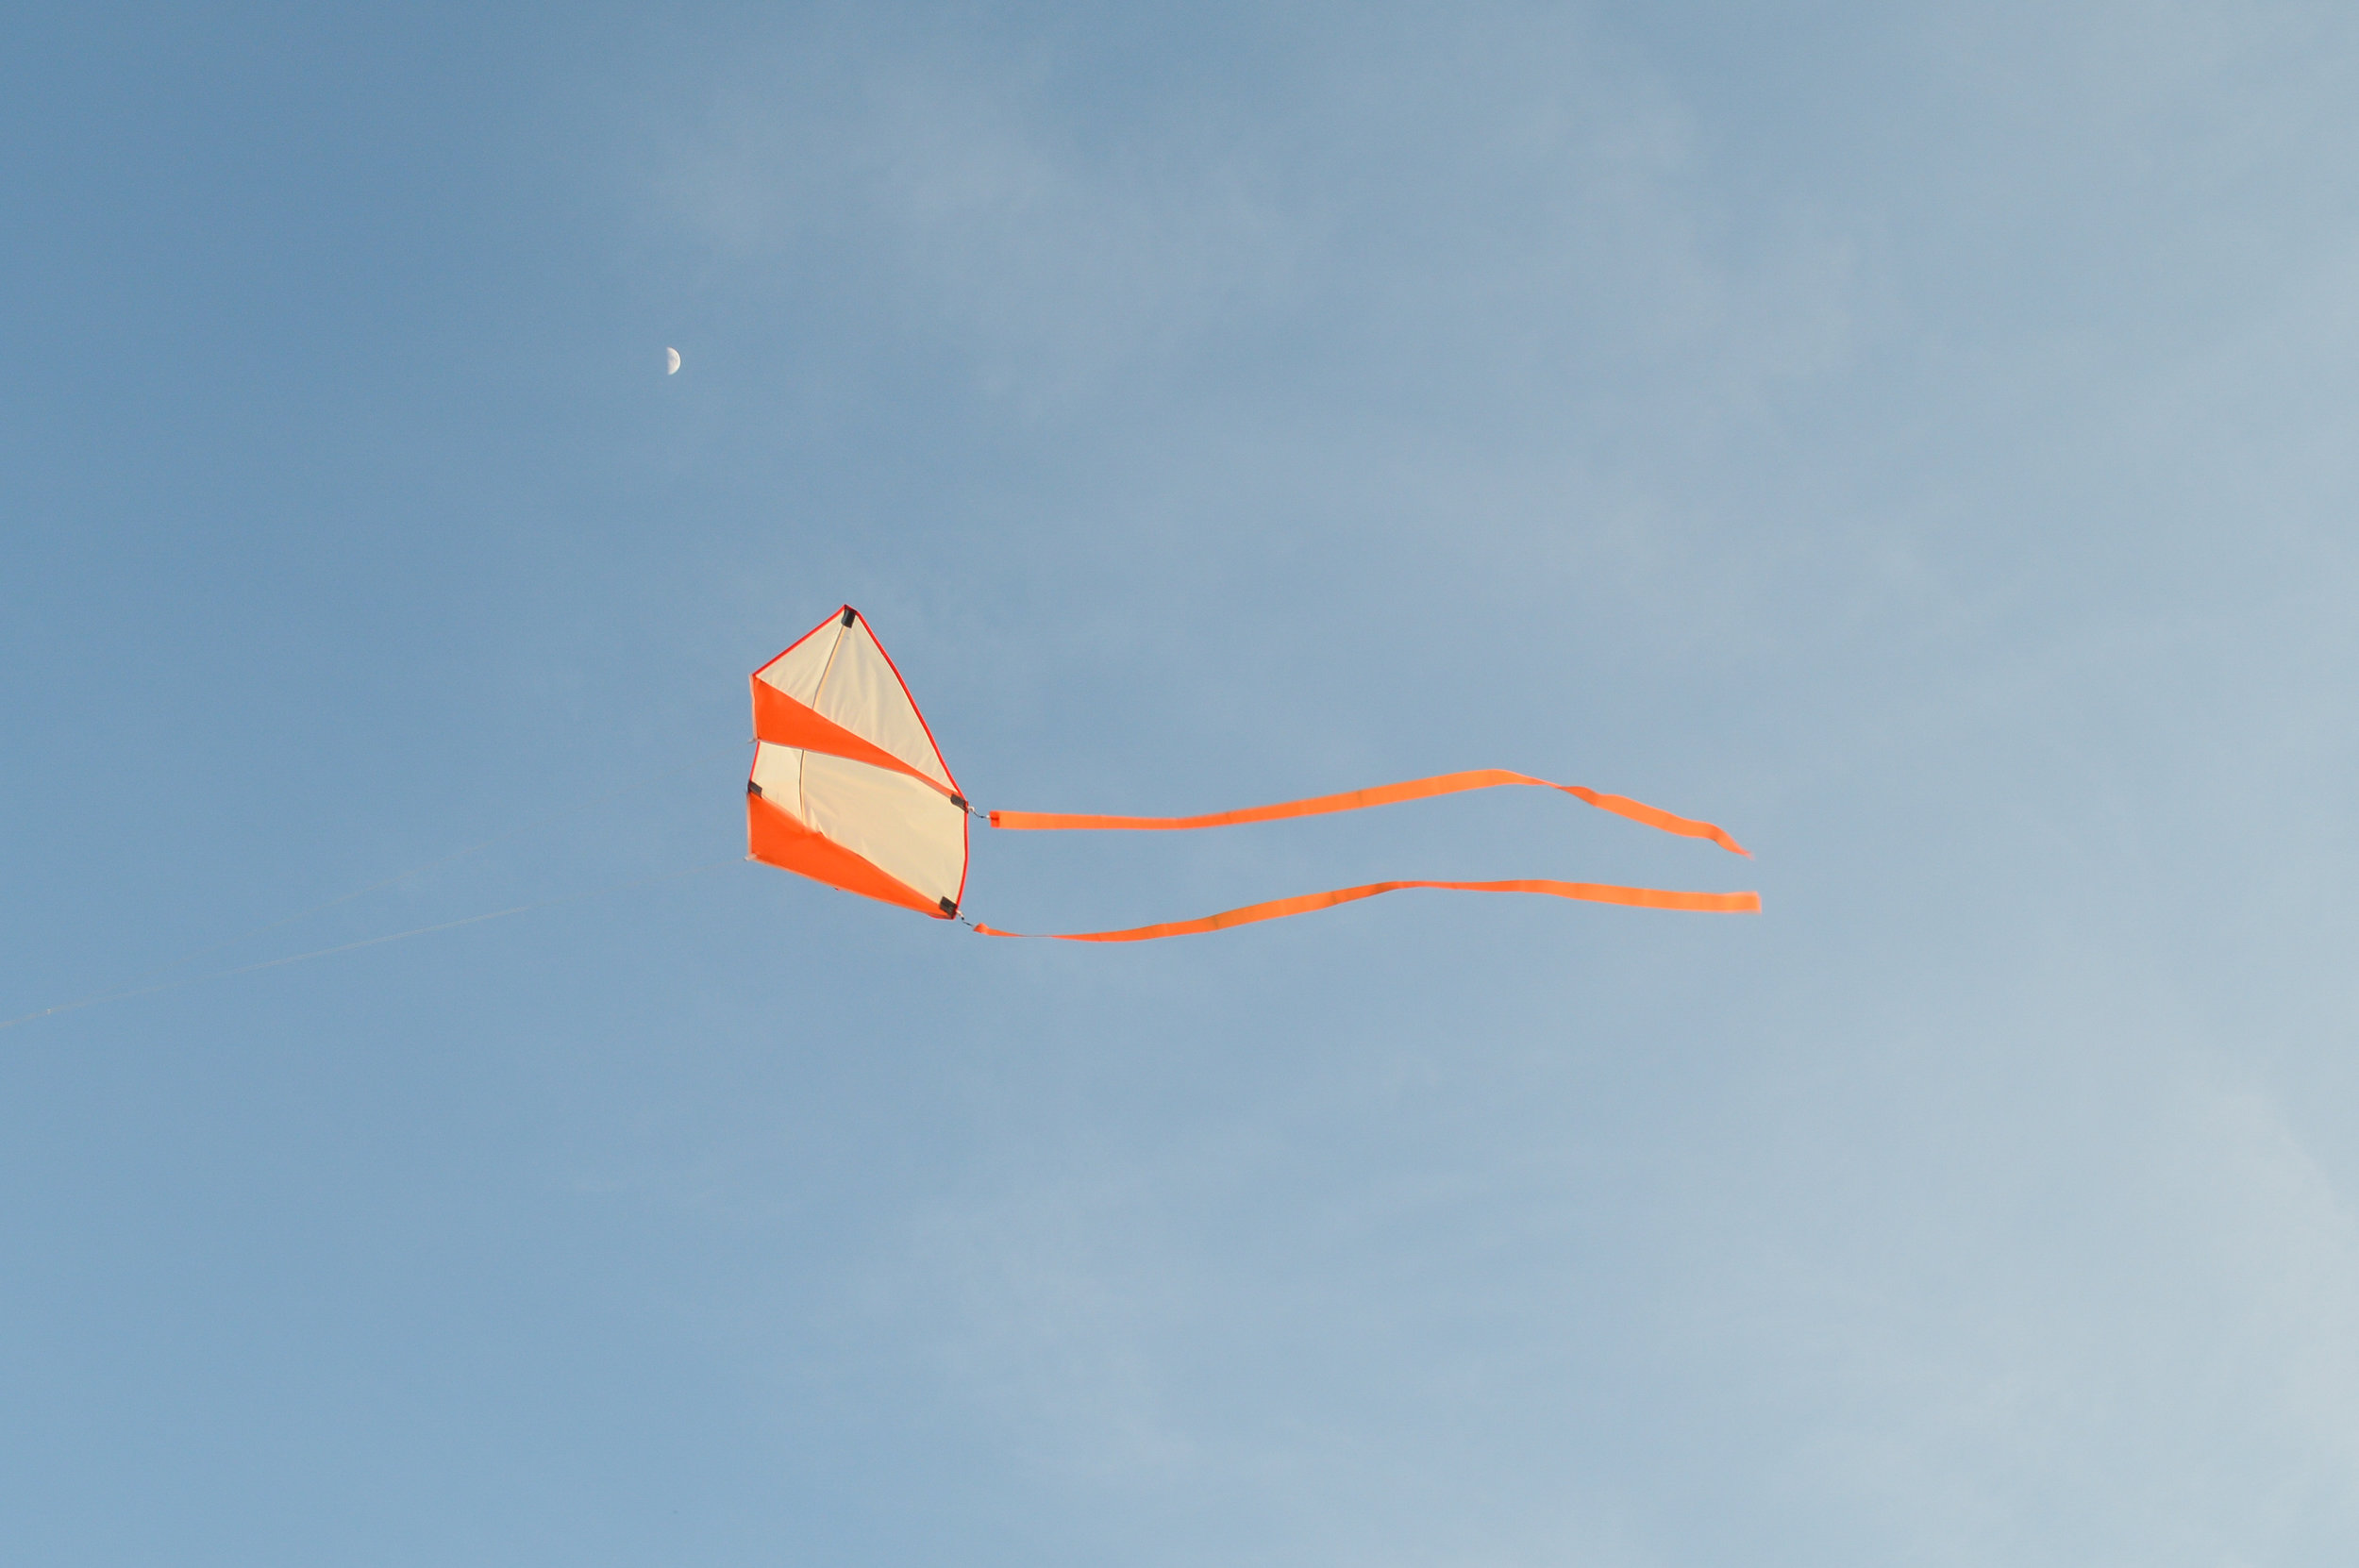 Little kite chases day moon.